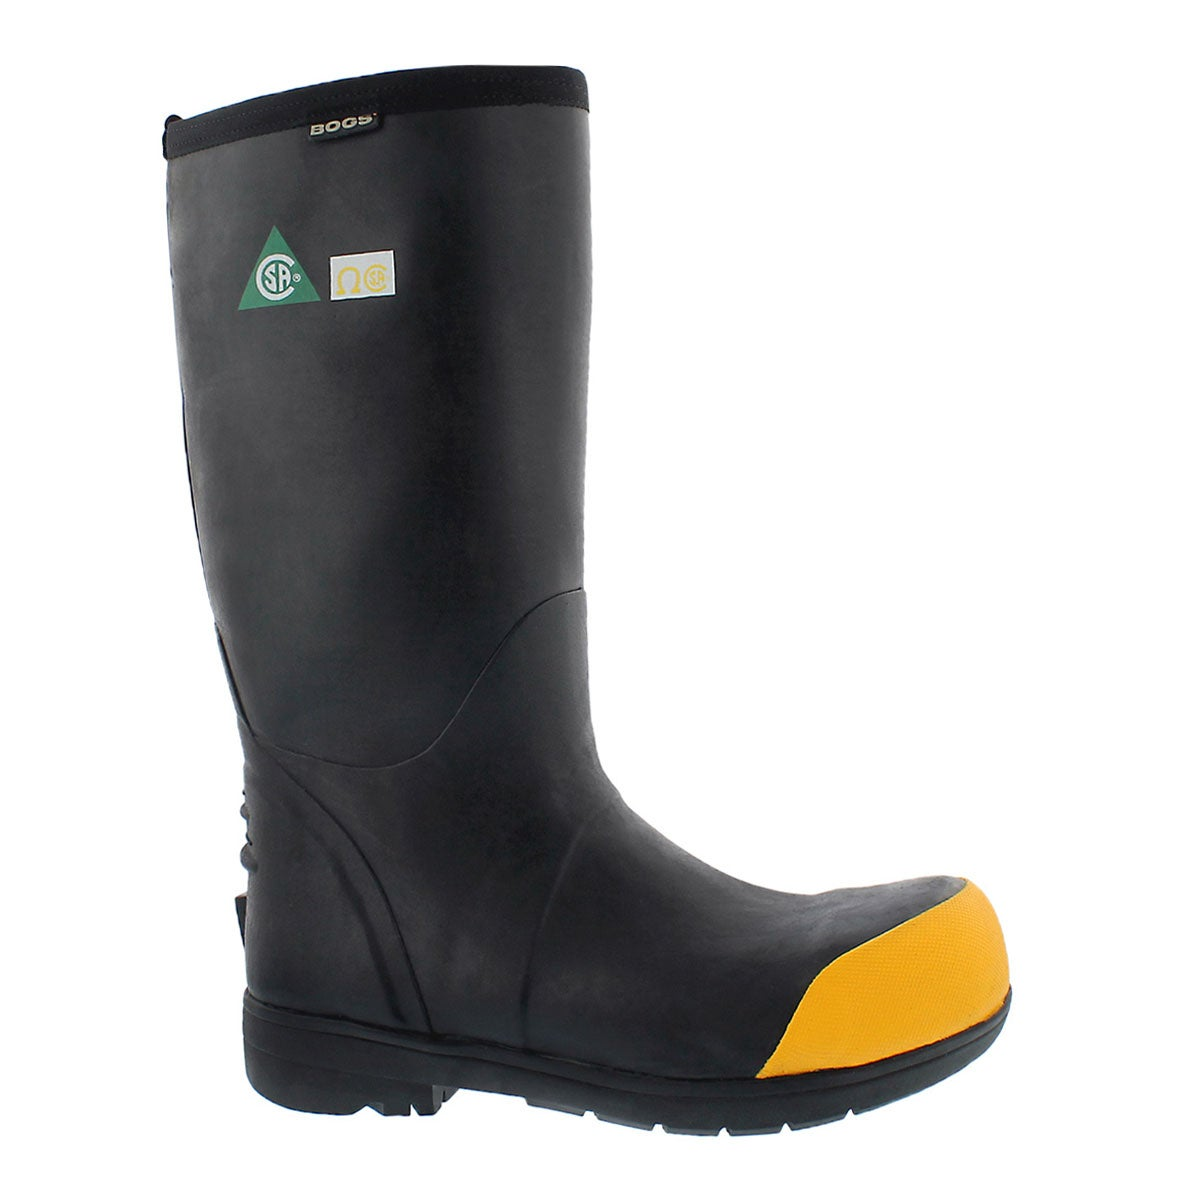 Mns Food Pro High ST CSA wtpf blk boot